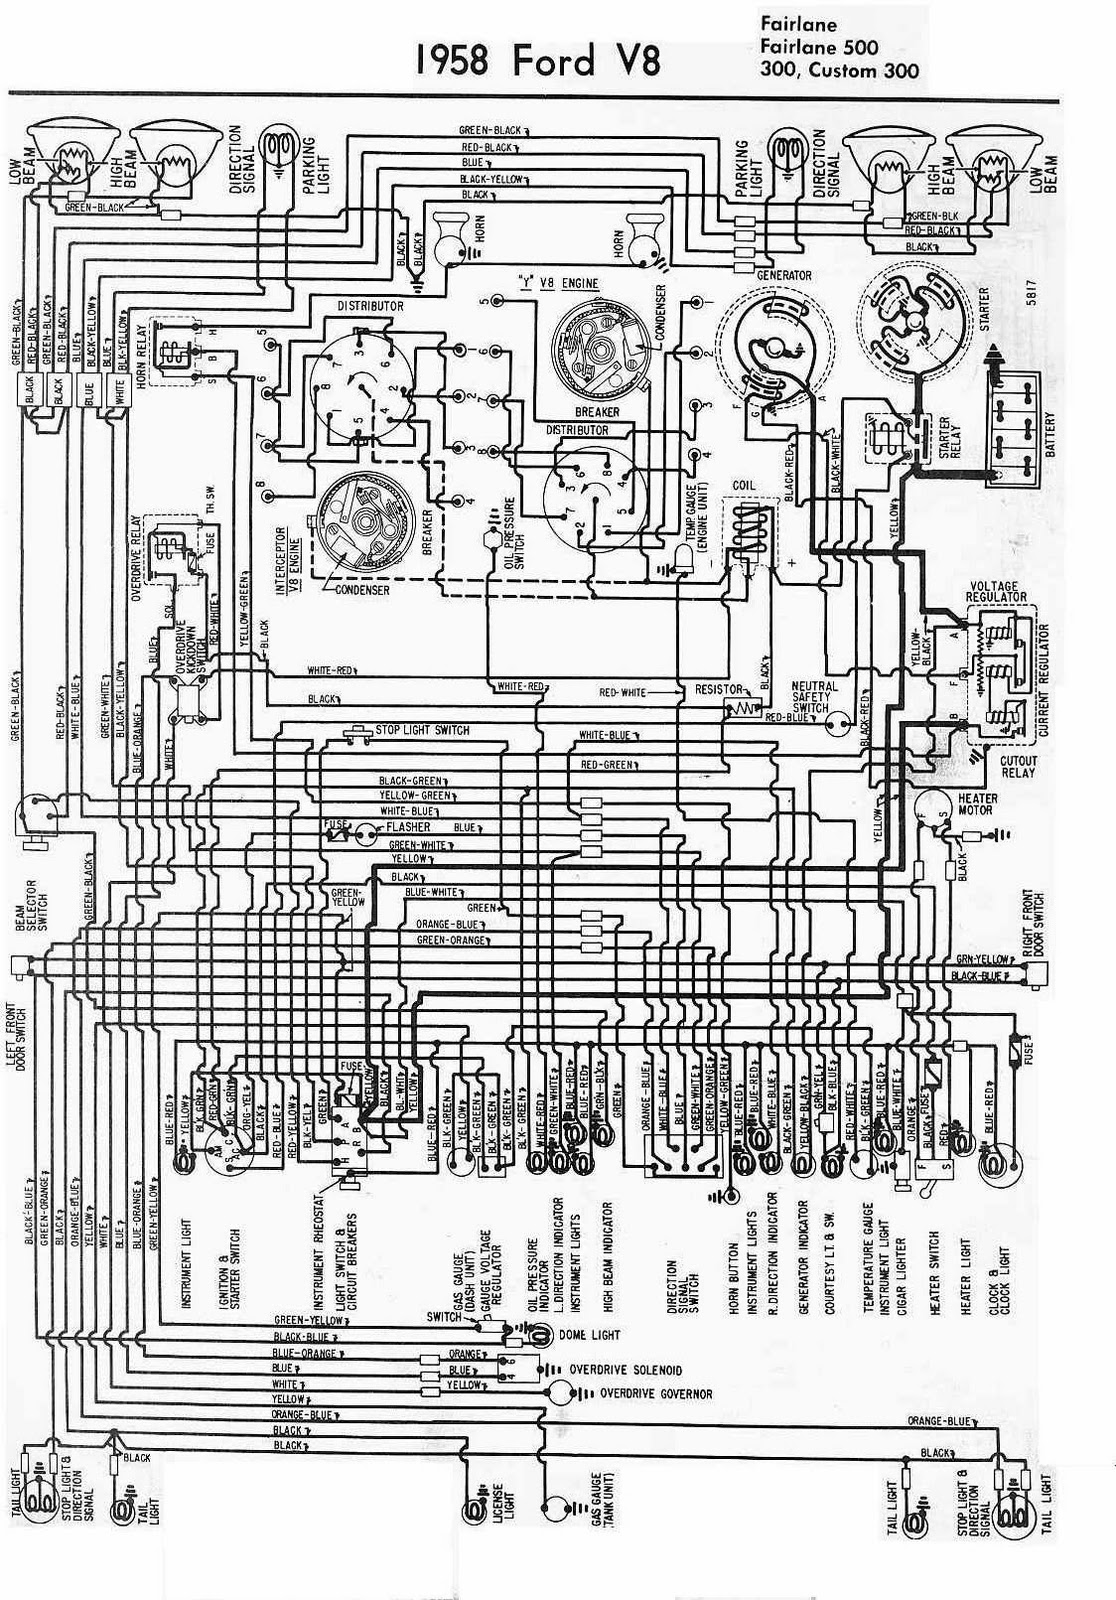 1958 Corvette Wiring Diagram Temp Fuse Box 1966 Electrical For Ford V8 All About Diagrams Rh Diagramonwiring Blogspot Com 1964